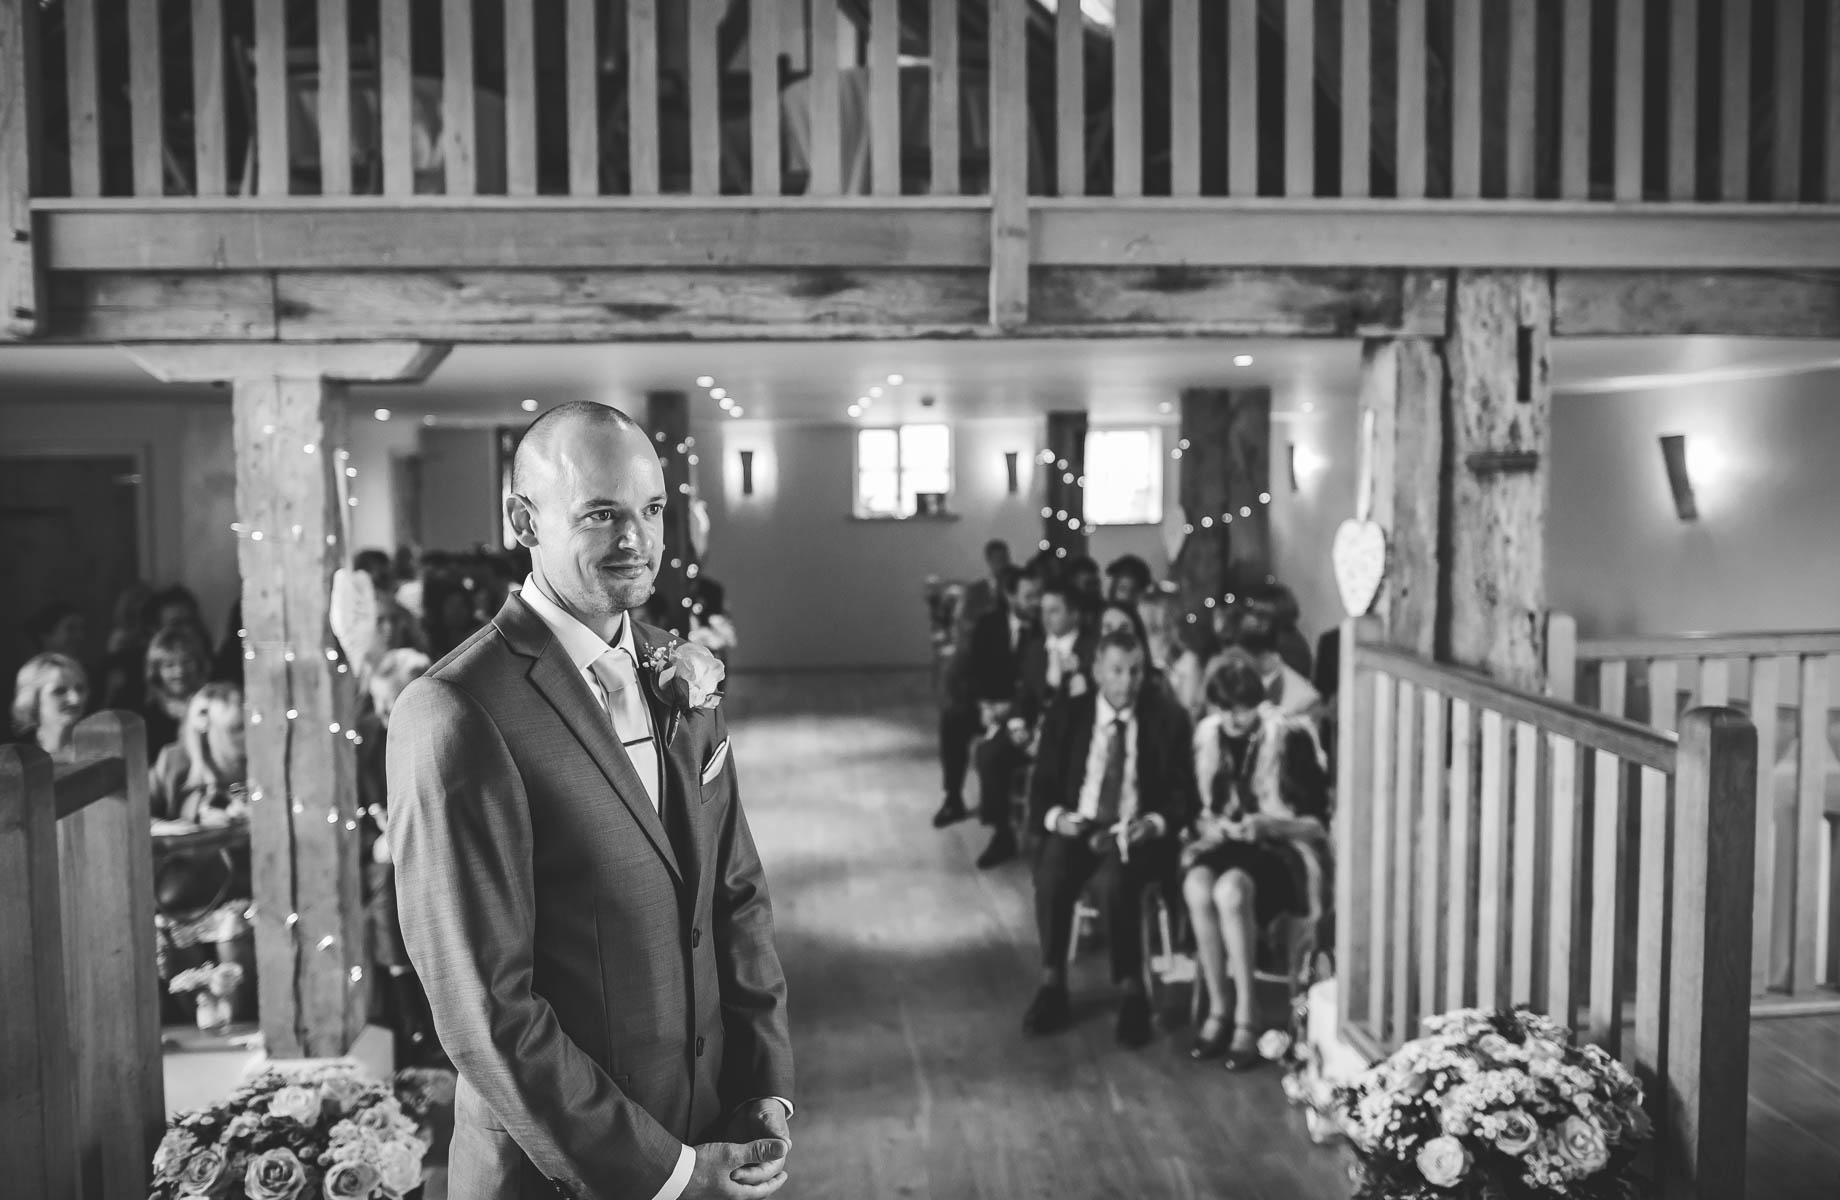 Bury Court Barn wedding photography - Guy Collier Photography - Karen and John (51 of 166)